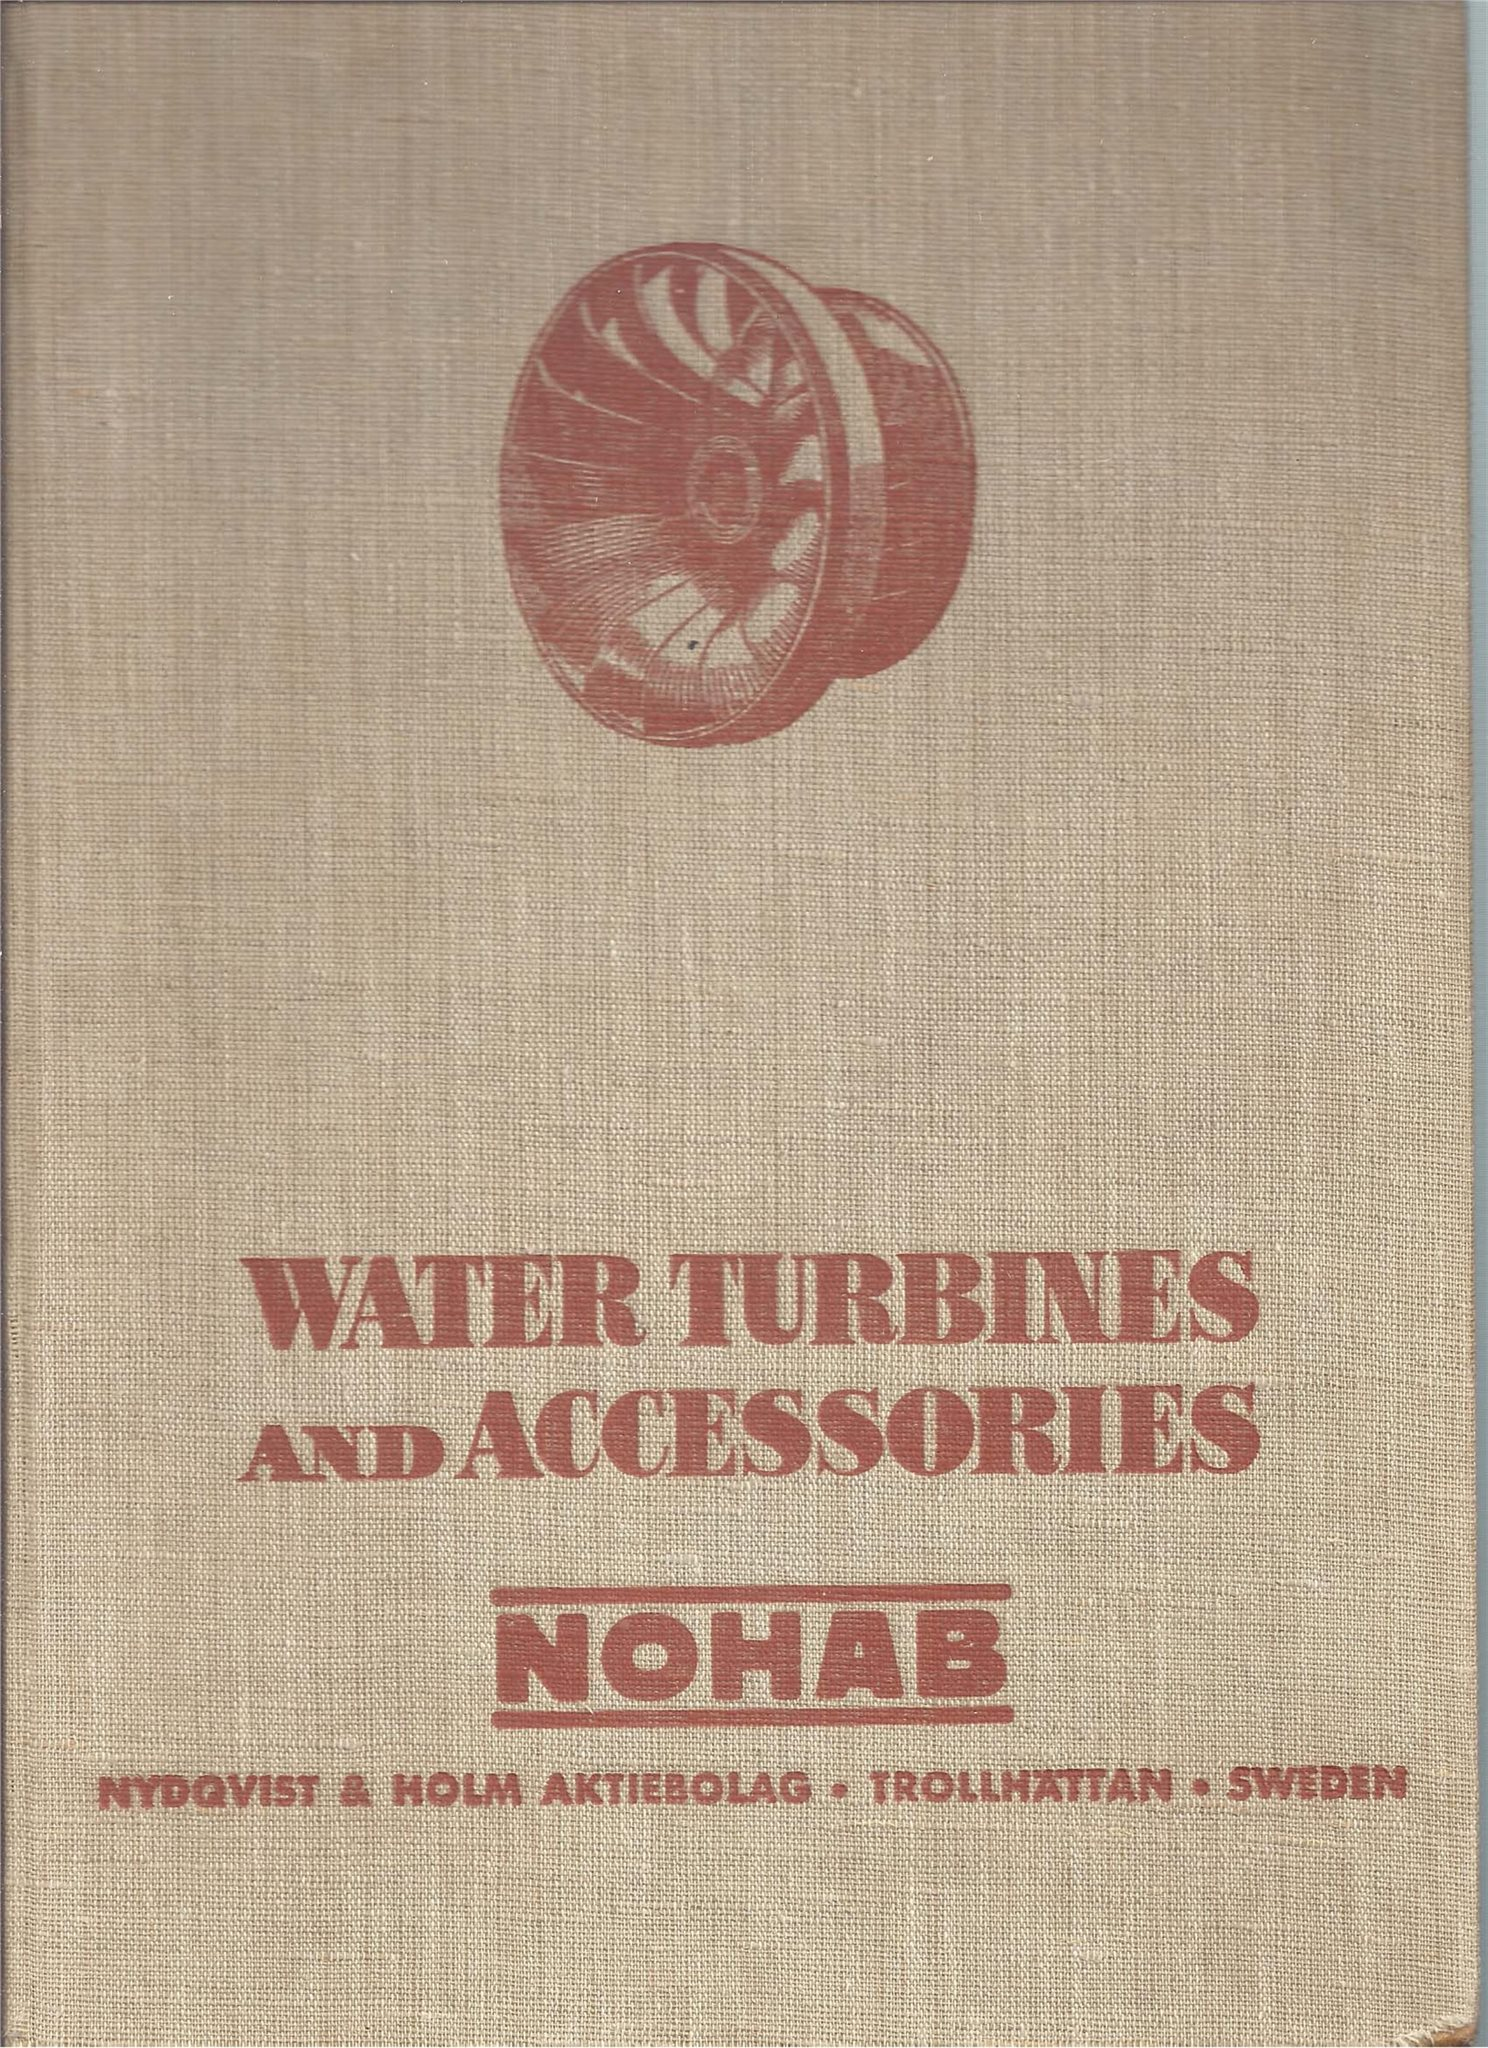 NOHAB, Nydqvist & Holm AB, Trollhättan, WATER TURBINES and ACCESSORIES.